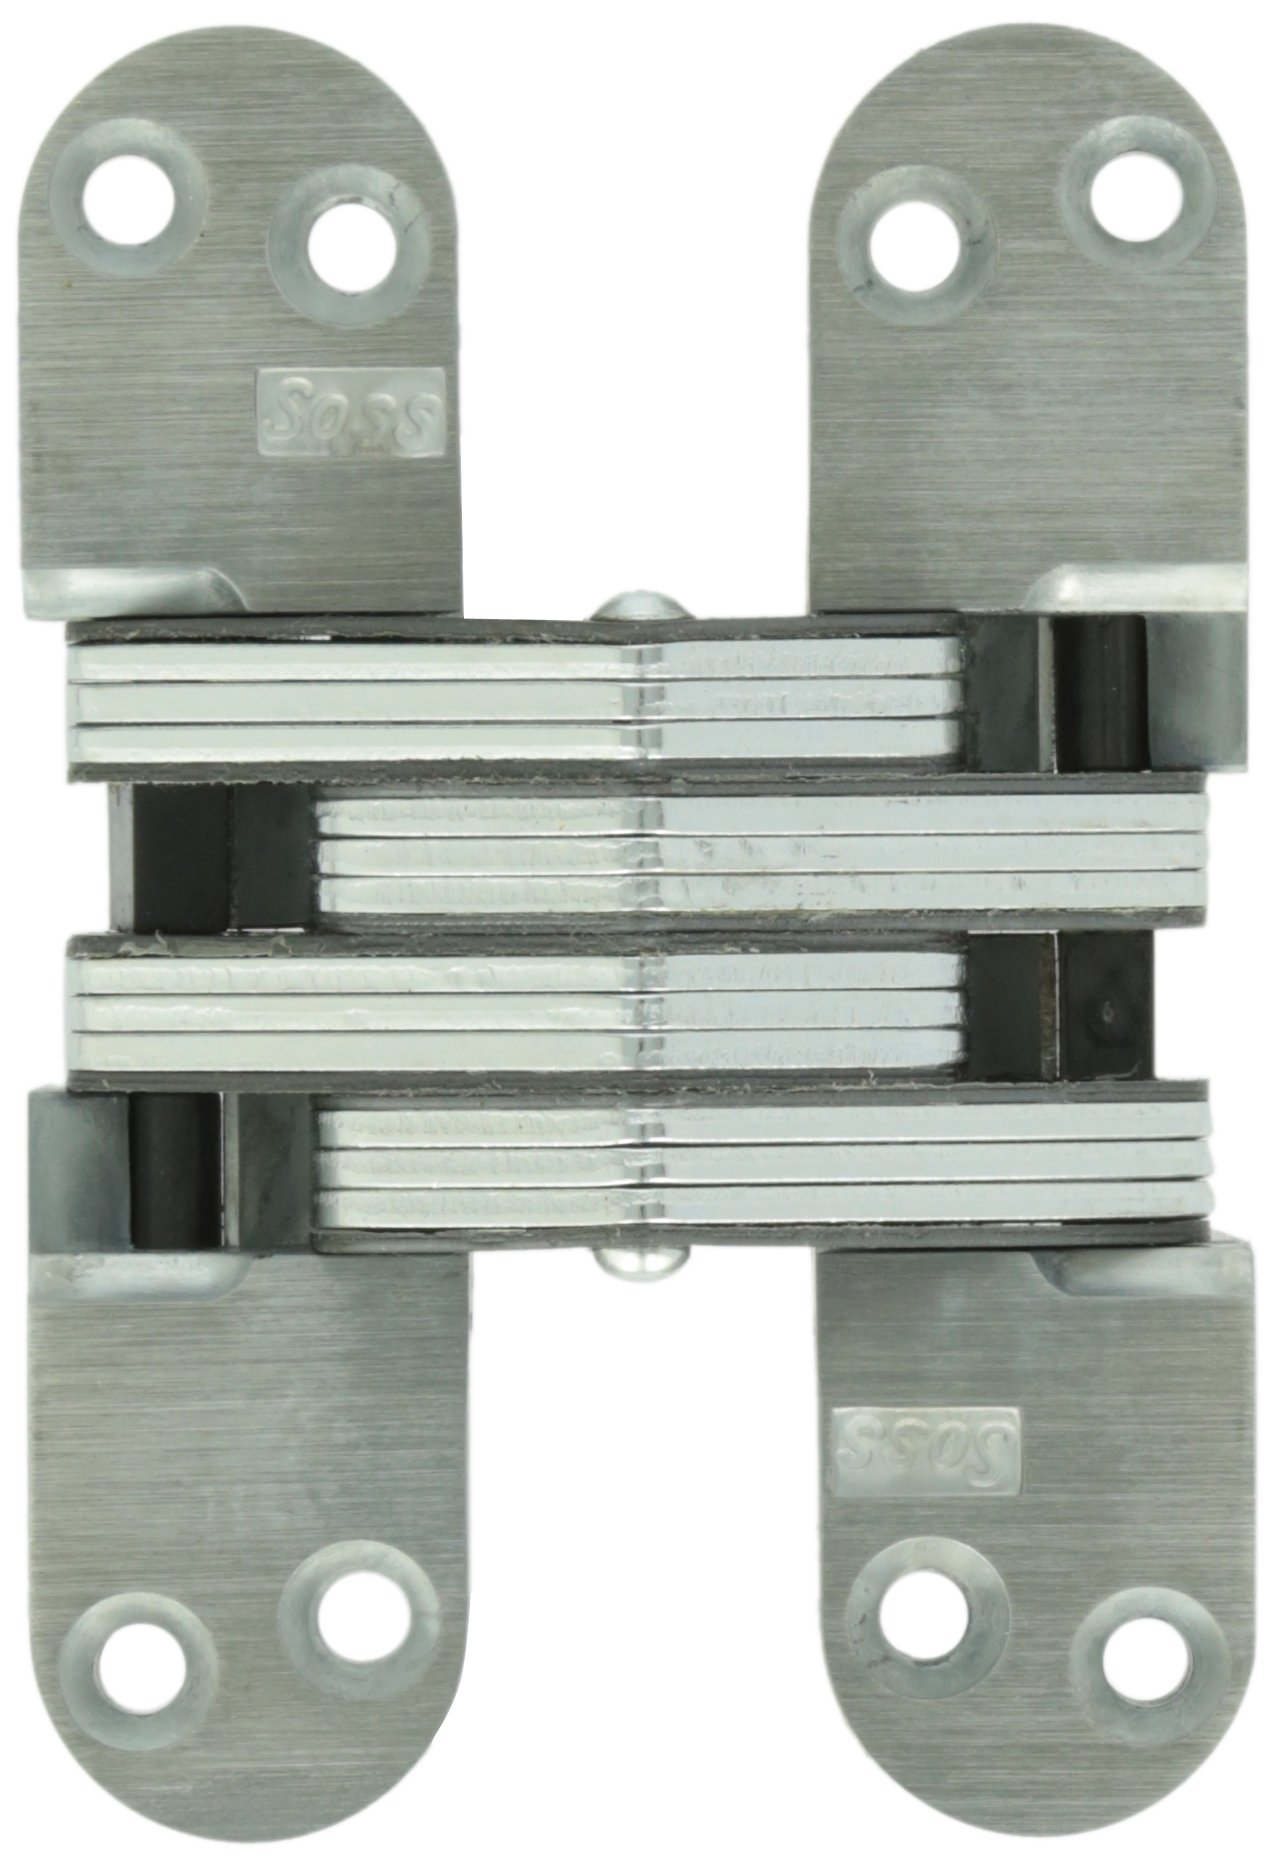 SOSS 218UNP 218 Zinc Invisible Hinge with Holes for Wood or Metal Applications, Mortise Mounting, Unplated